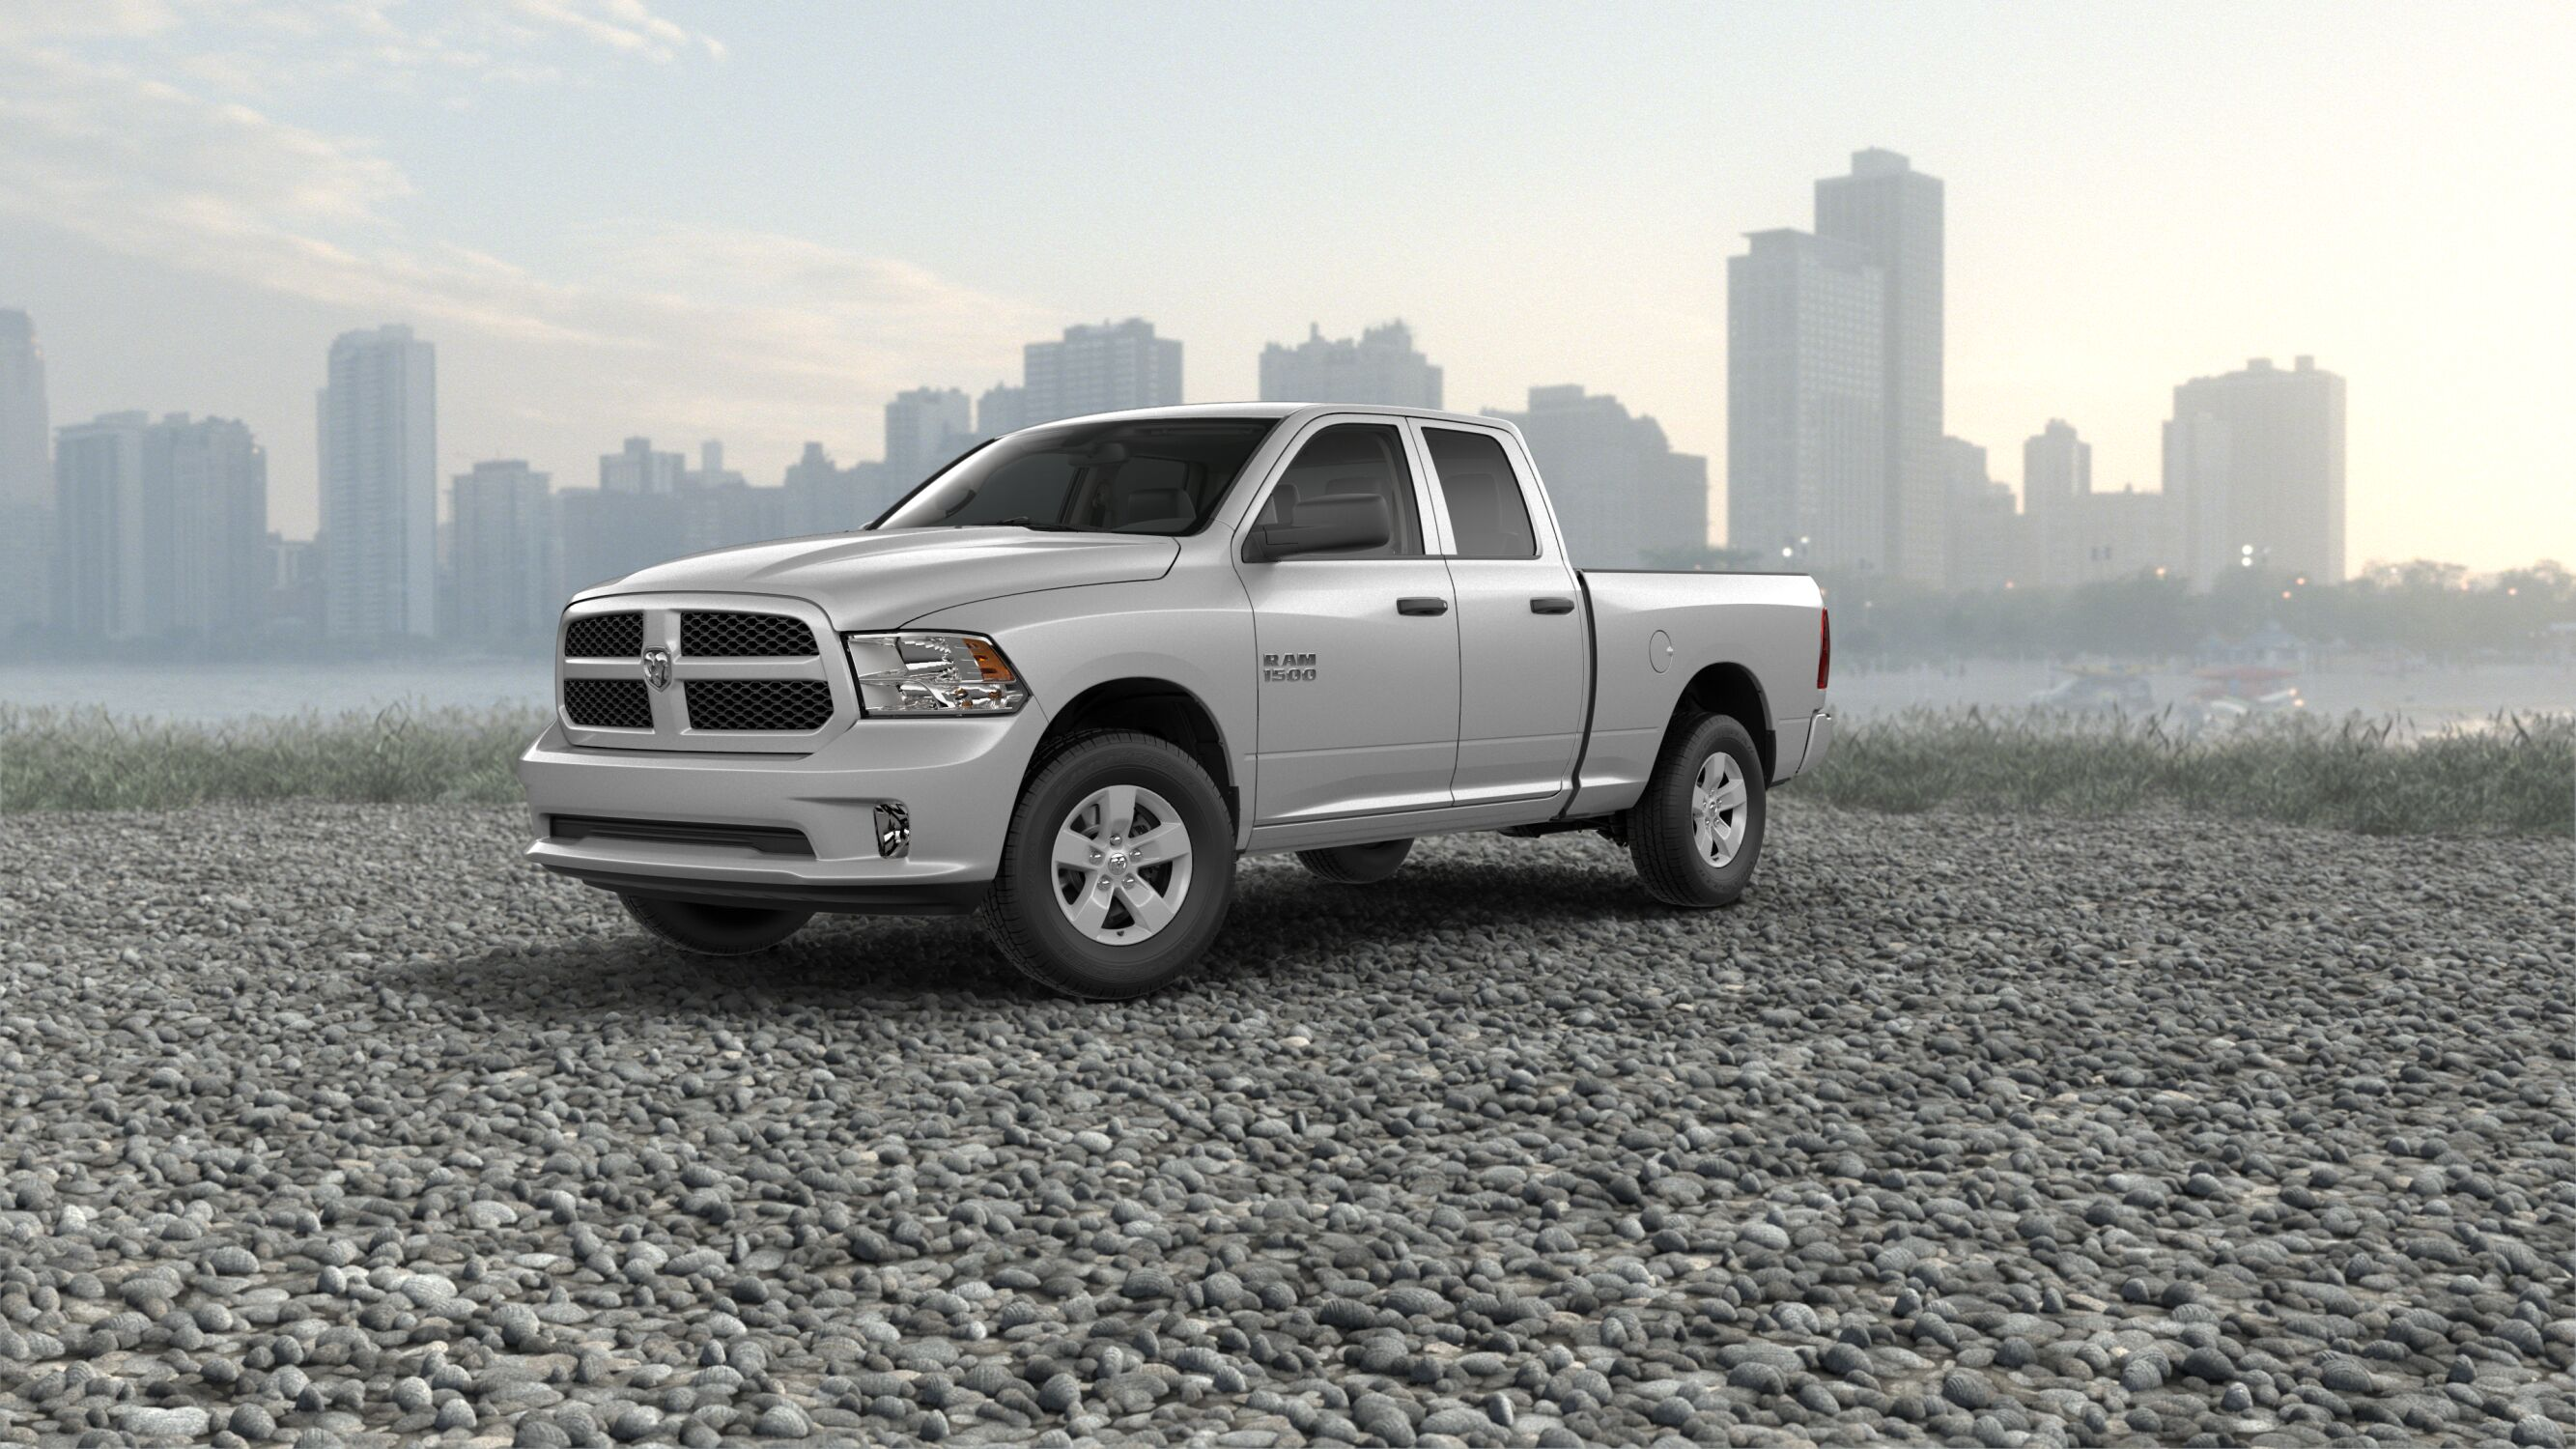 2018 Ram 1500 Bright Silver Exterior Paint o Akins Dodge